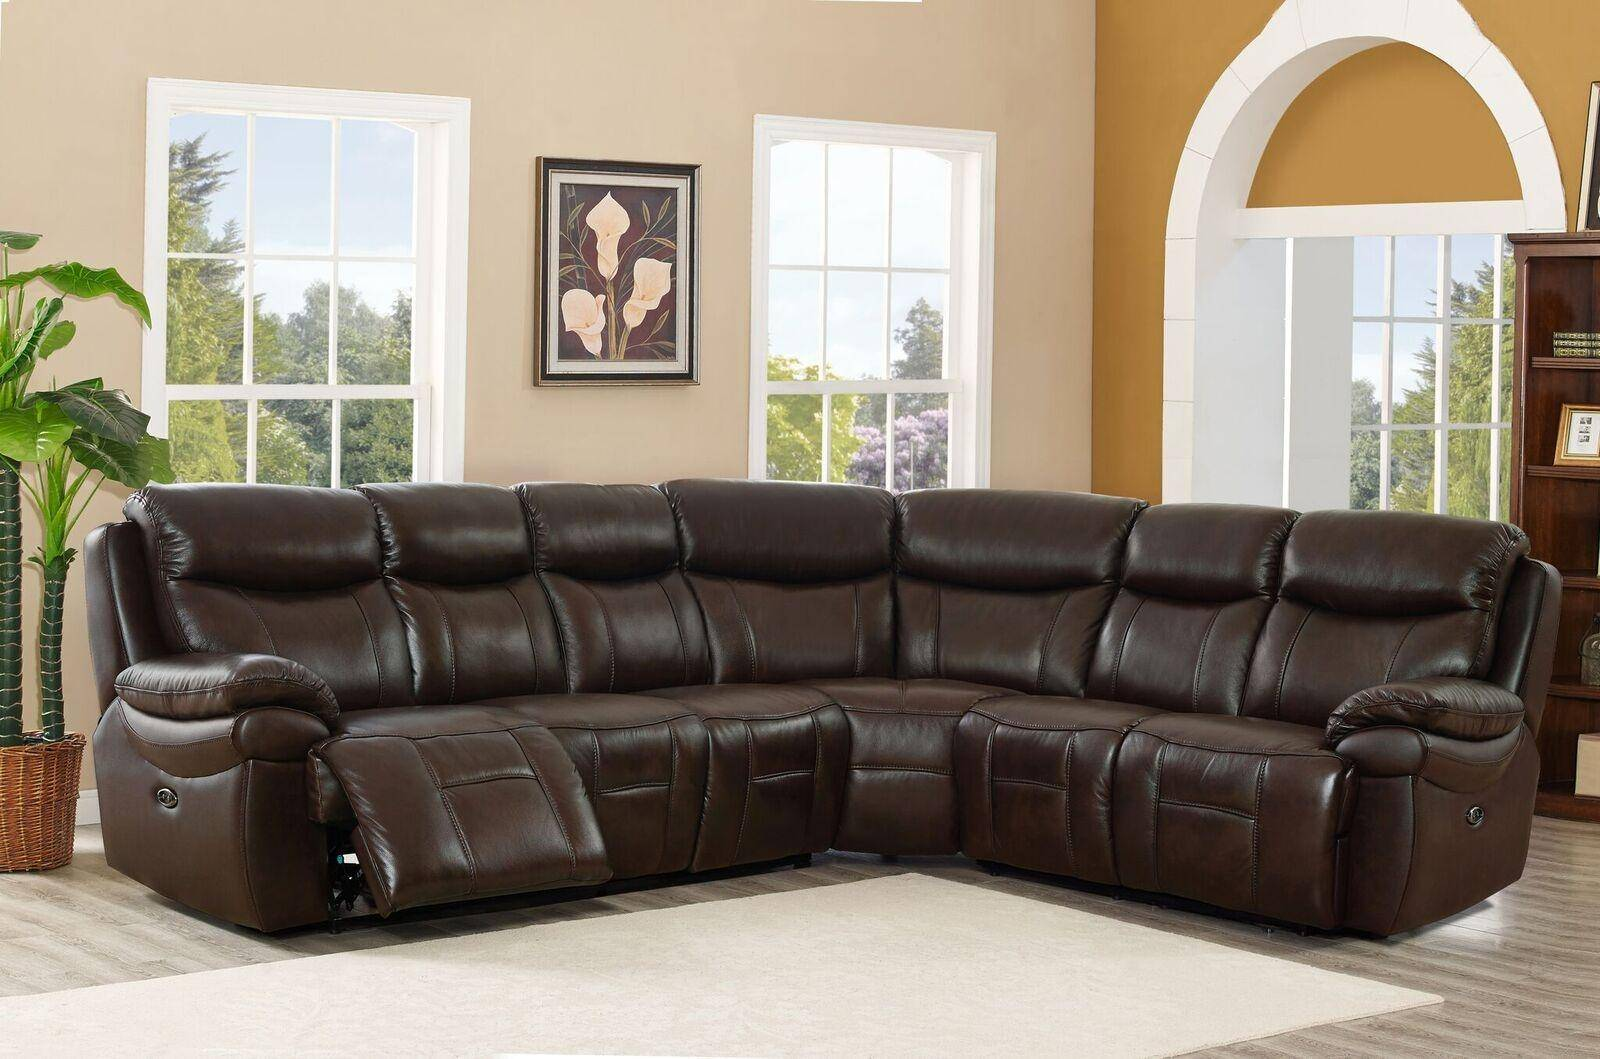 Marvelous Top Grain Leather Power Reclining Sectional Sofa Hydeline Fraser Amax Leather Unemploymentrelief Wooden Chair Designs For Living Room Unemploymentrelieforg